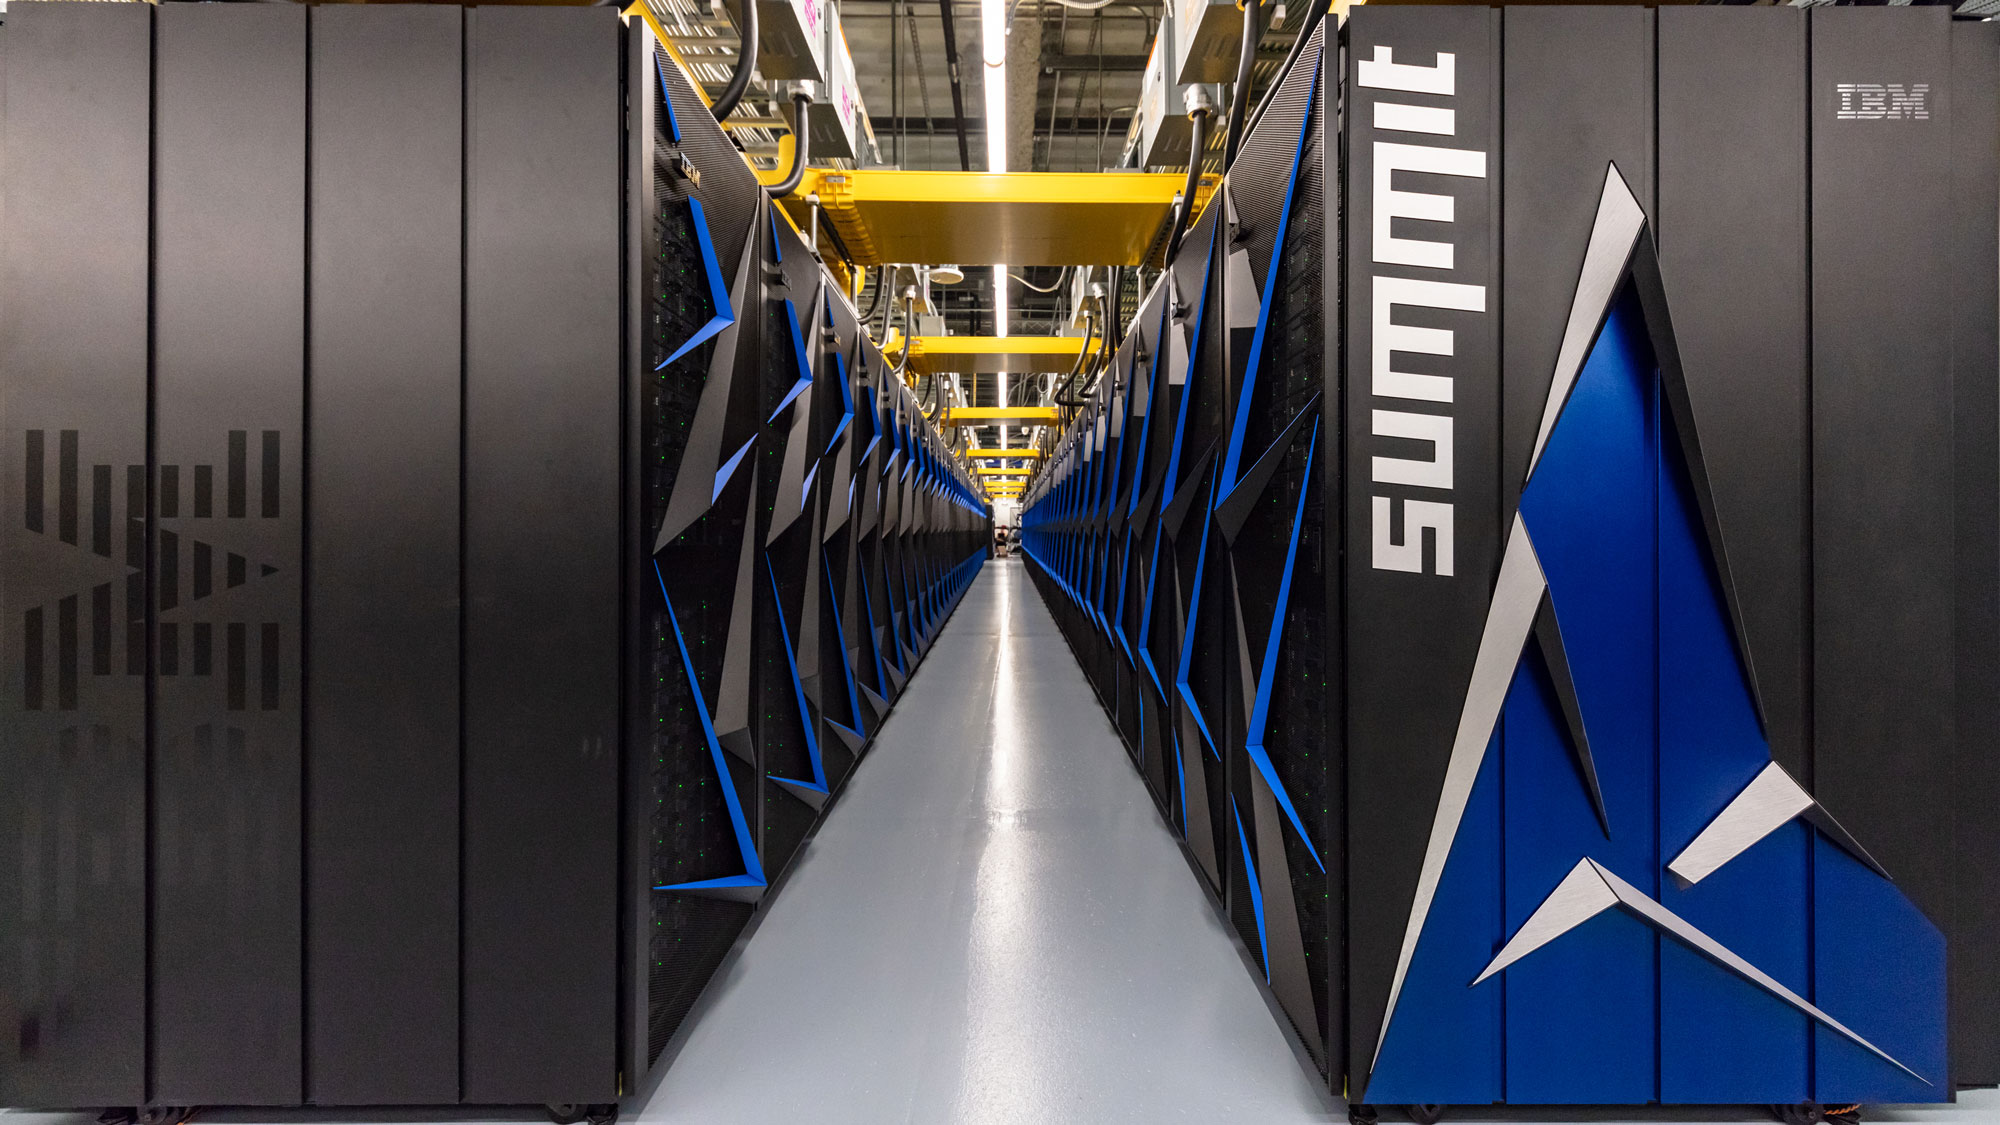 At 200 petaflops, the USA  once again owns the world's fastest supercomputer